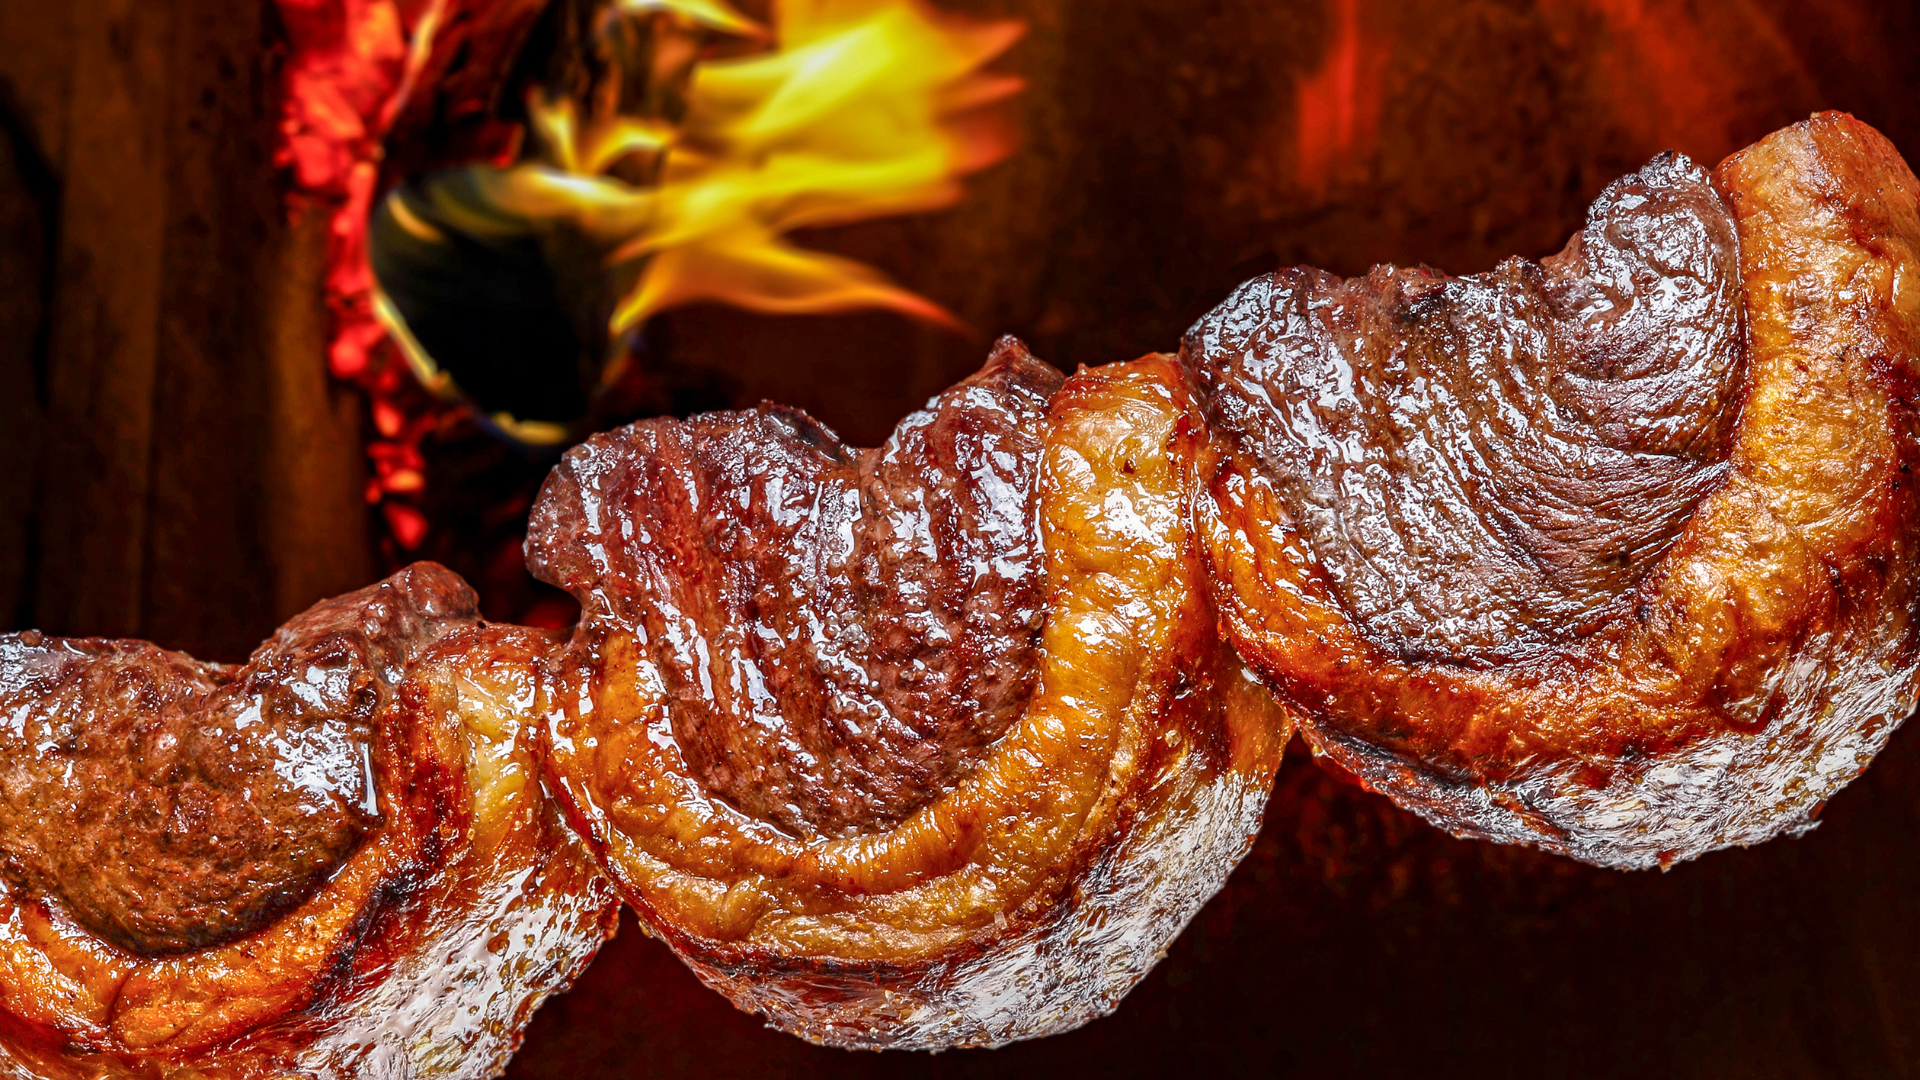 Enjoy the famous cut of Picanha